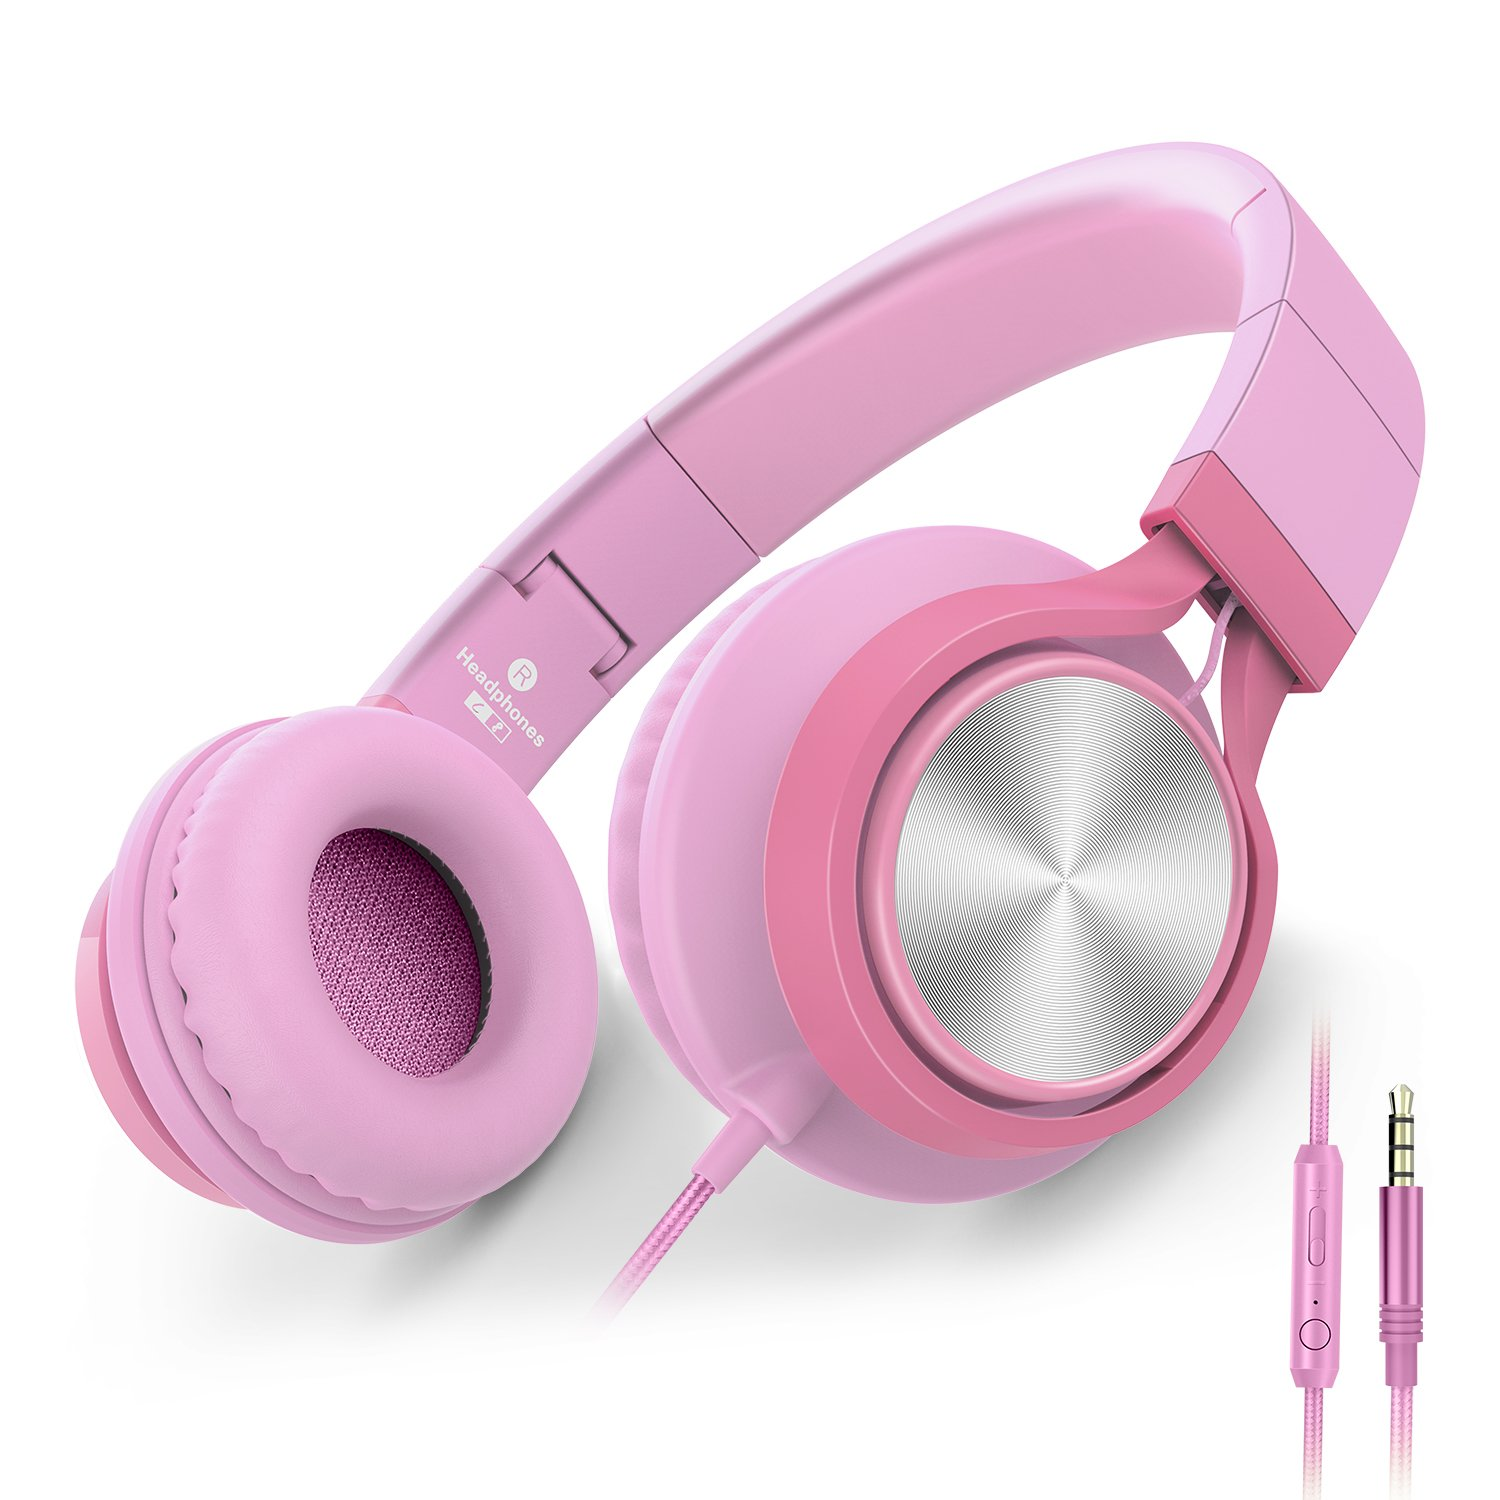 AILIHEN C8 Girls Headphones with Microphone and Volume Control Folding Lightweight Headset for Cellphones Tablets Smartphones Laptop Computer PC Mp3/4 (Pink) by AILIHEN